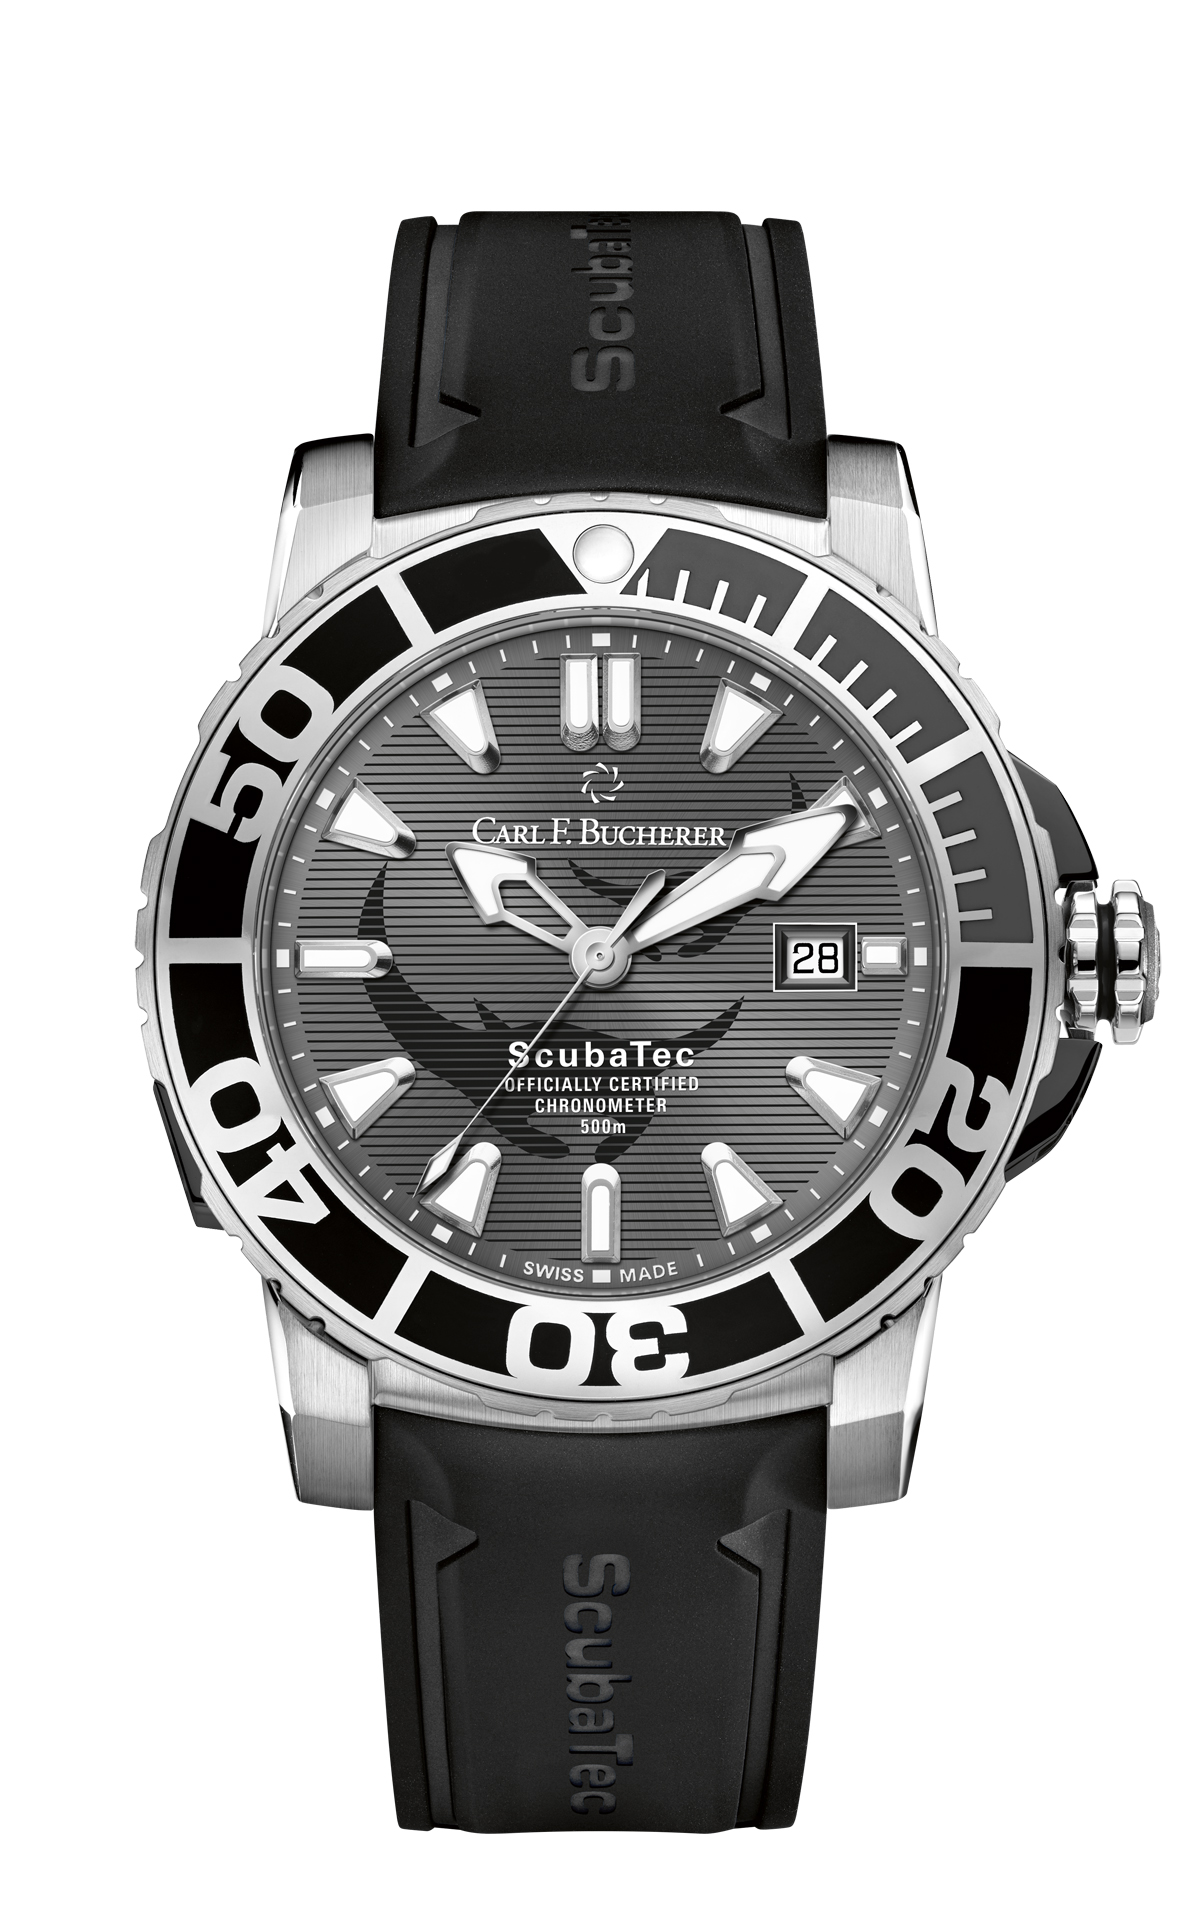 Carl F. Bucherer Patravi Scubatec Manta Trust watch is water resistant to 500 meters.